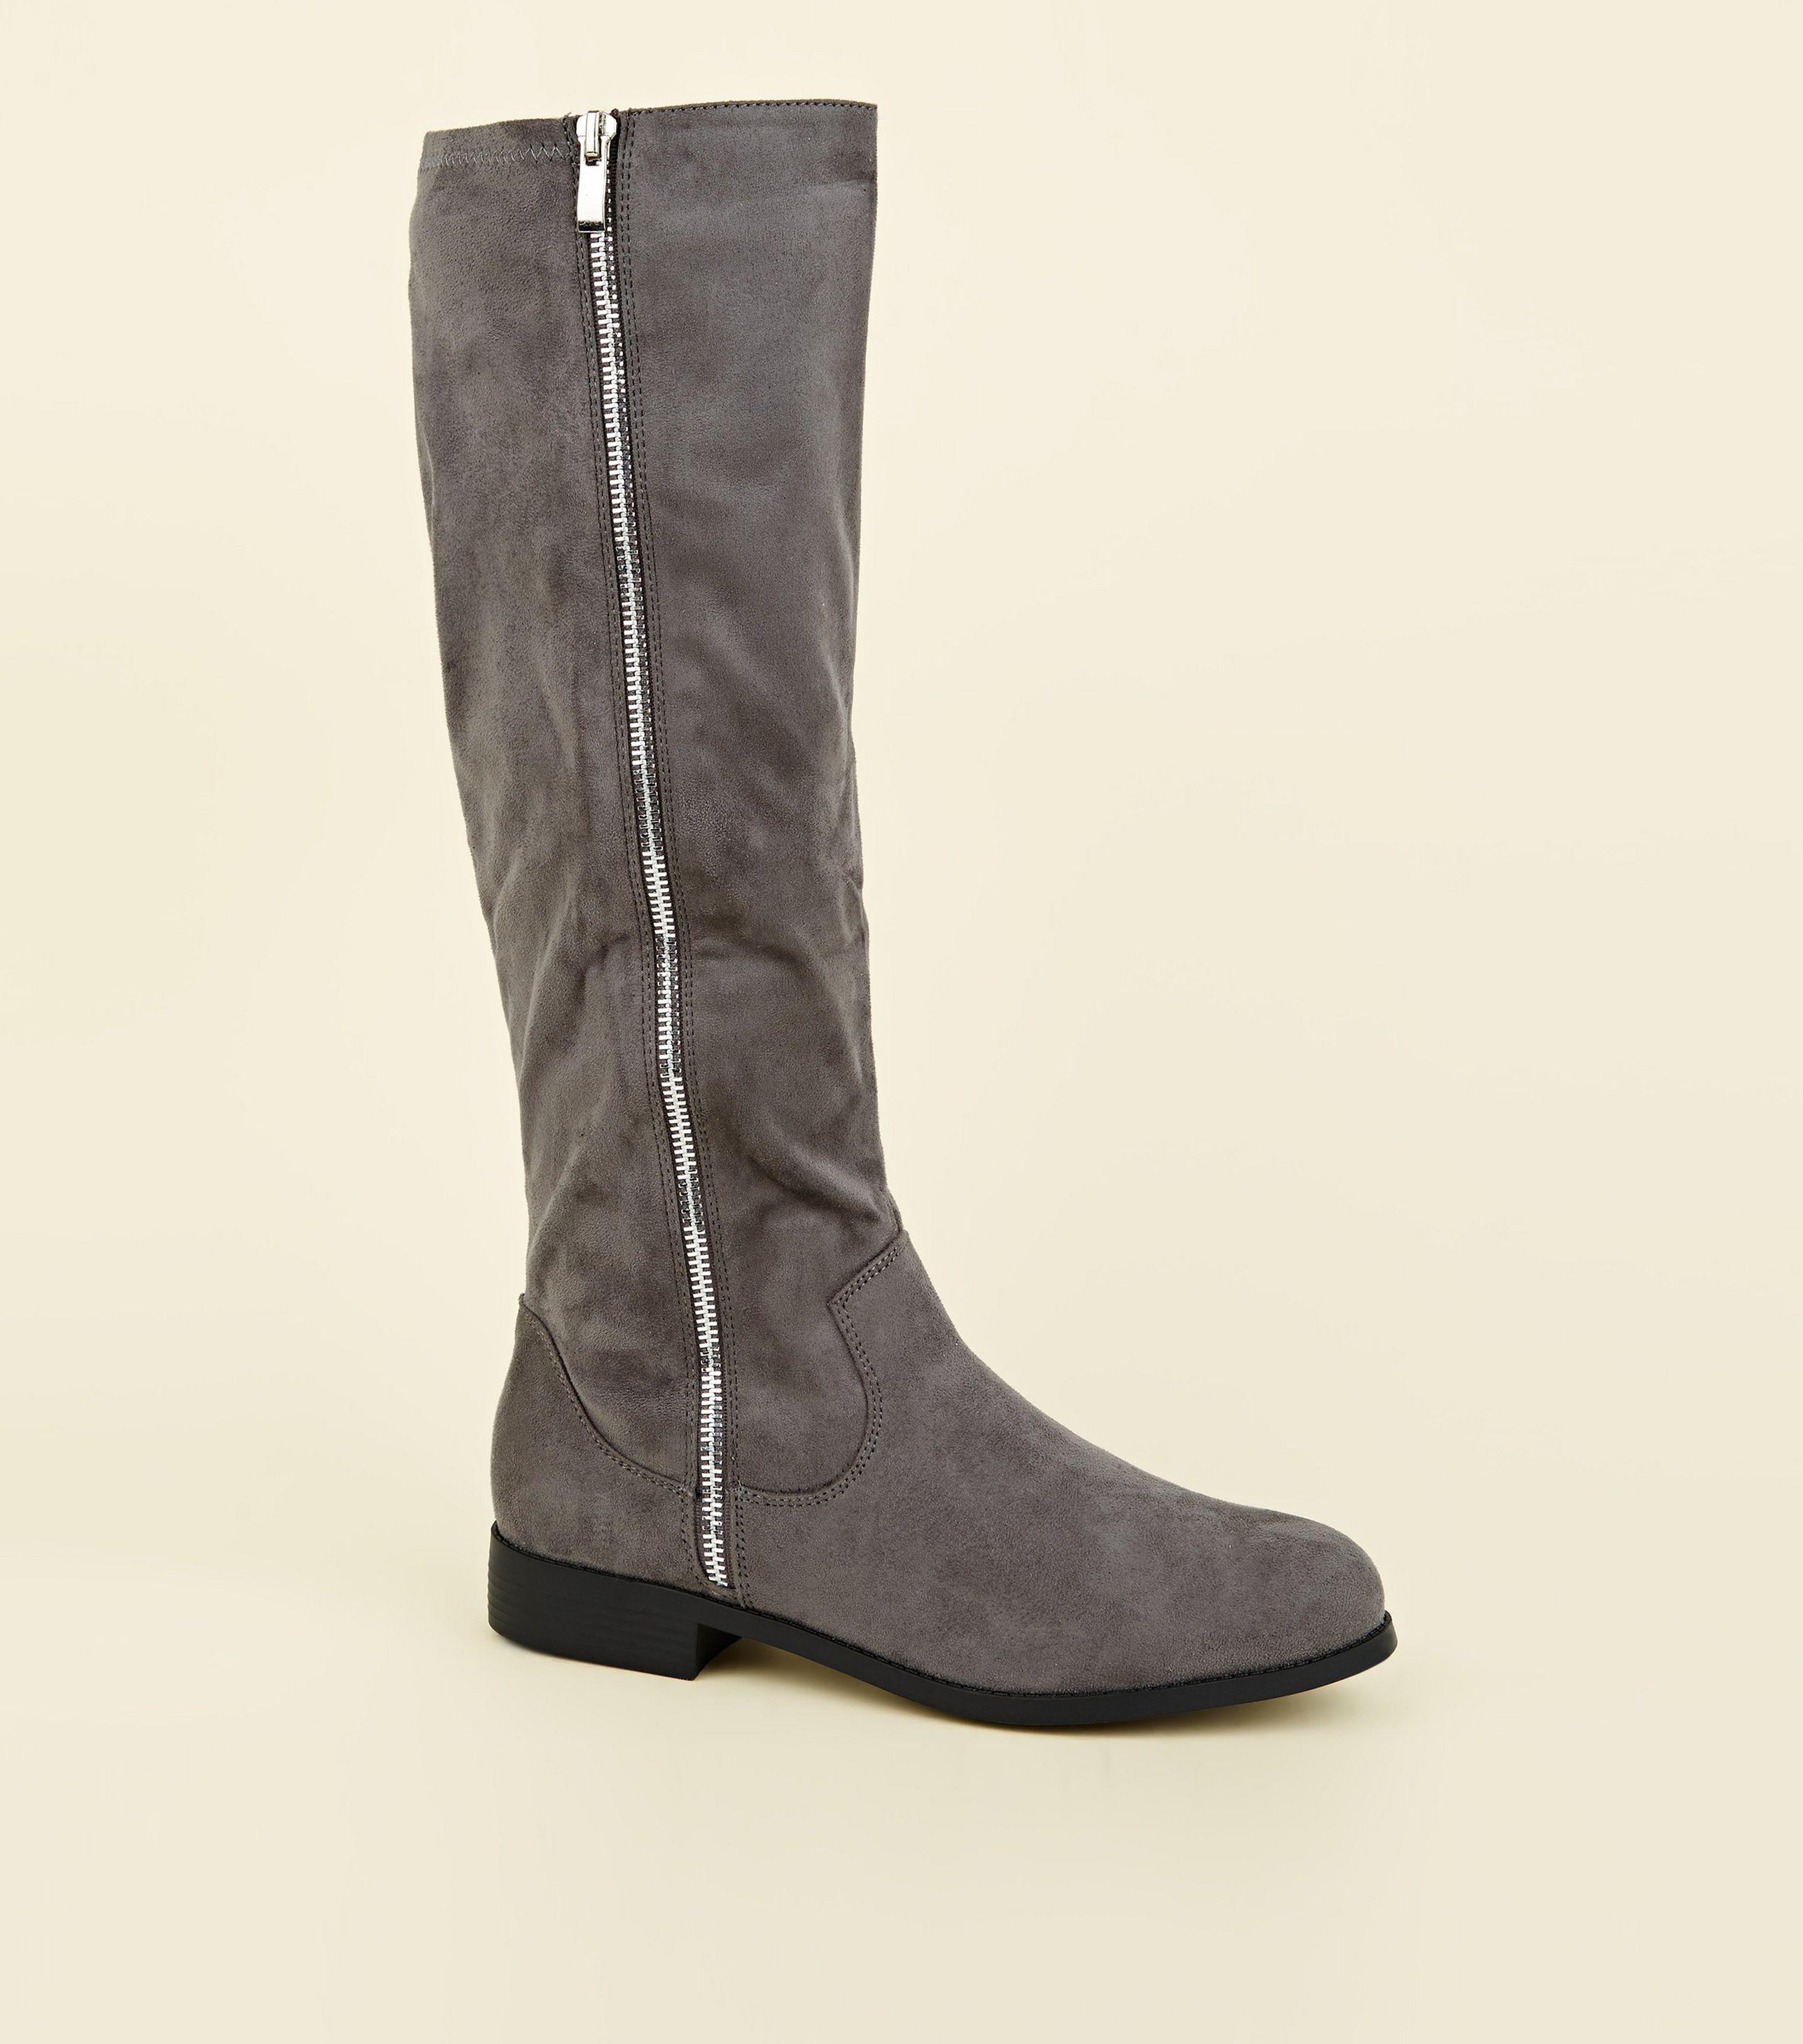 6838c3e9bd1 New Look Grey Extra Calf Fit Zip Side Knee High Flat Boots in Gray ...